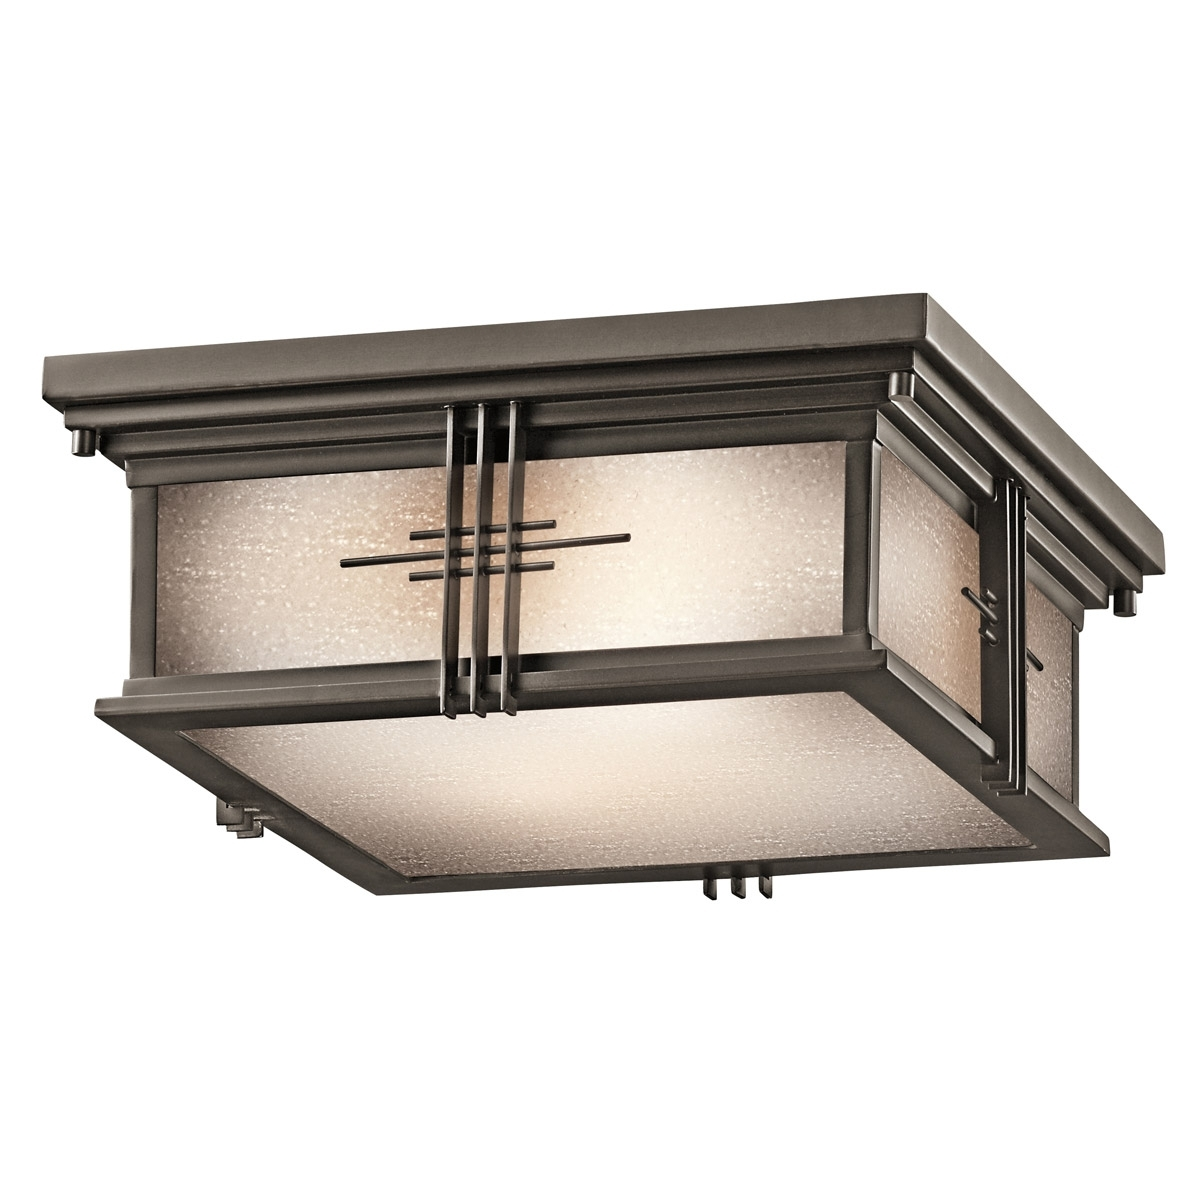 49164Oz Portman Square Outdoor Flush Mount Ceiling Fixture In Most Up To Date Craftsman Outdoor Ceiling Lights (View 2 of 20)